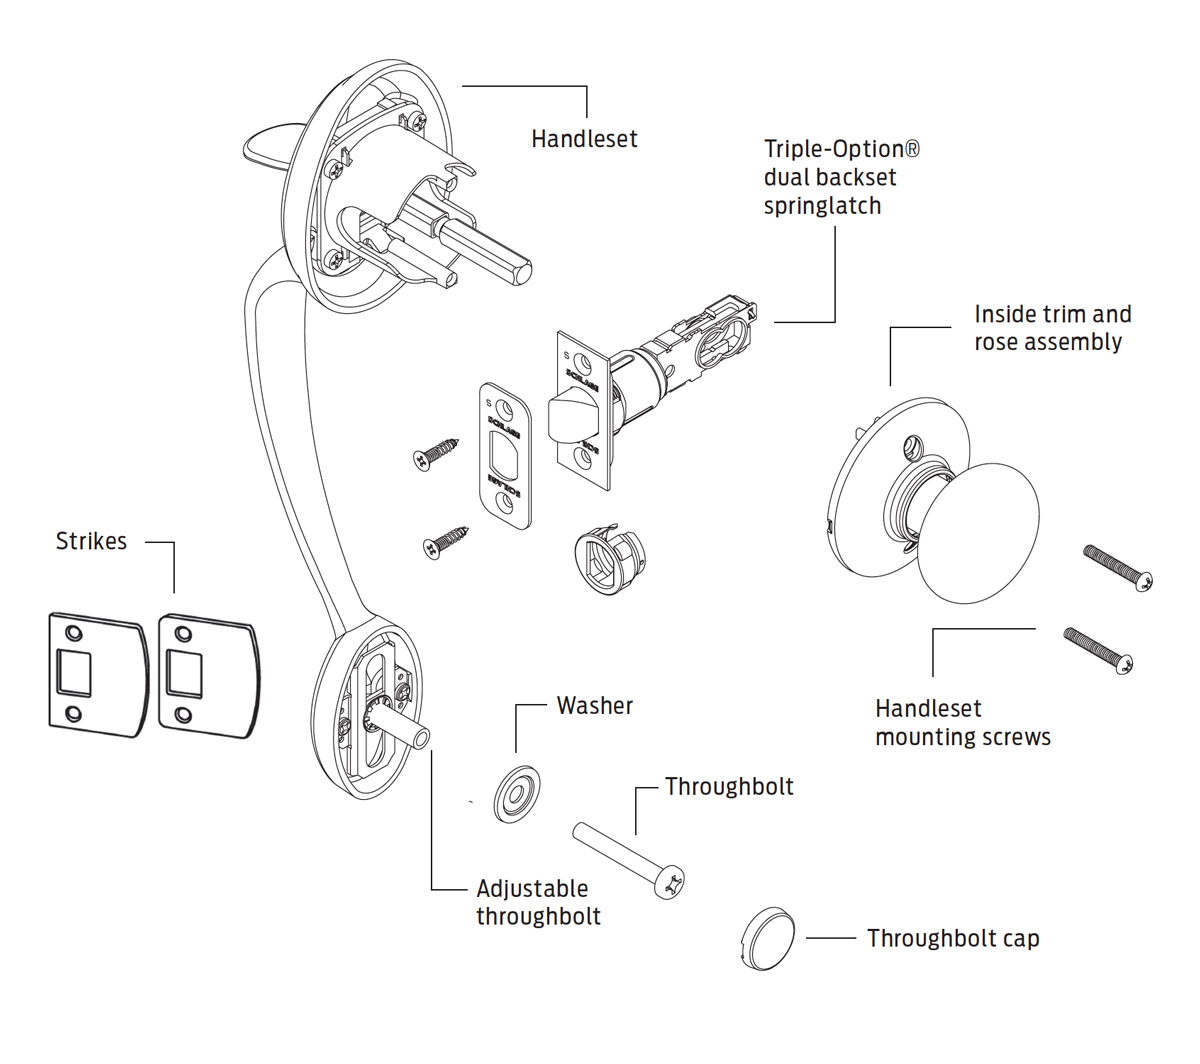 schlage parts diagram wiring diagram will be a thing u2022 rh exploreandmore co uk schlage deadbolt parts diagram schlage fe575 parts diagram